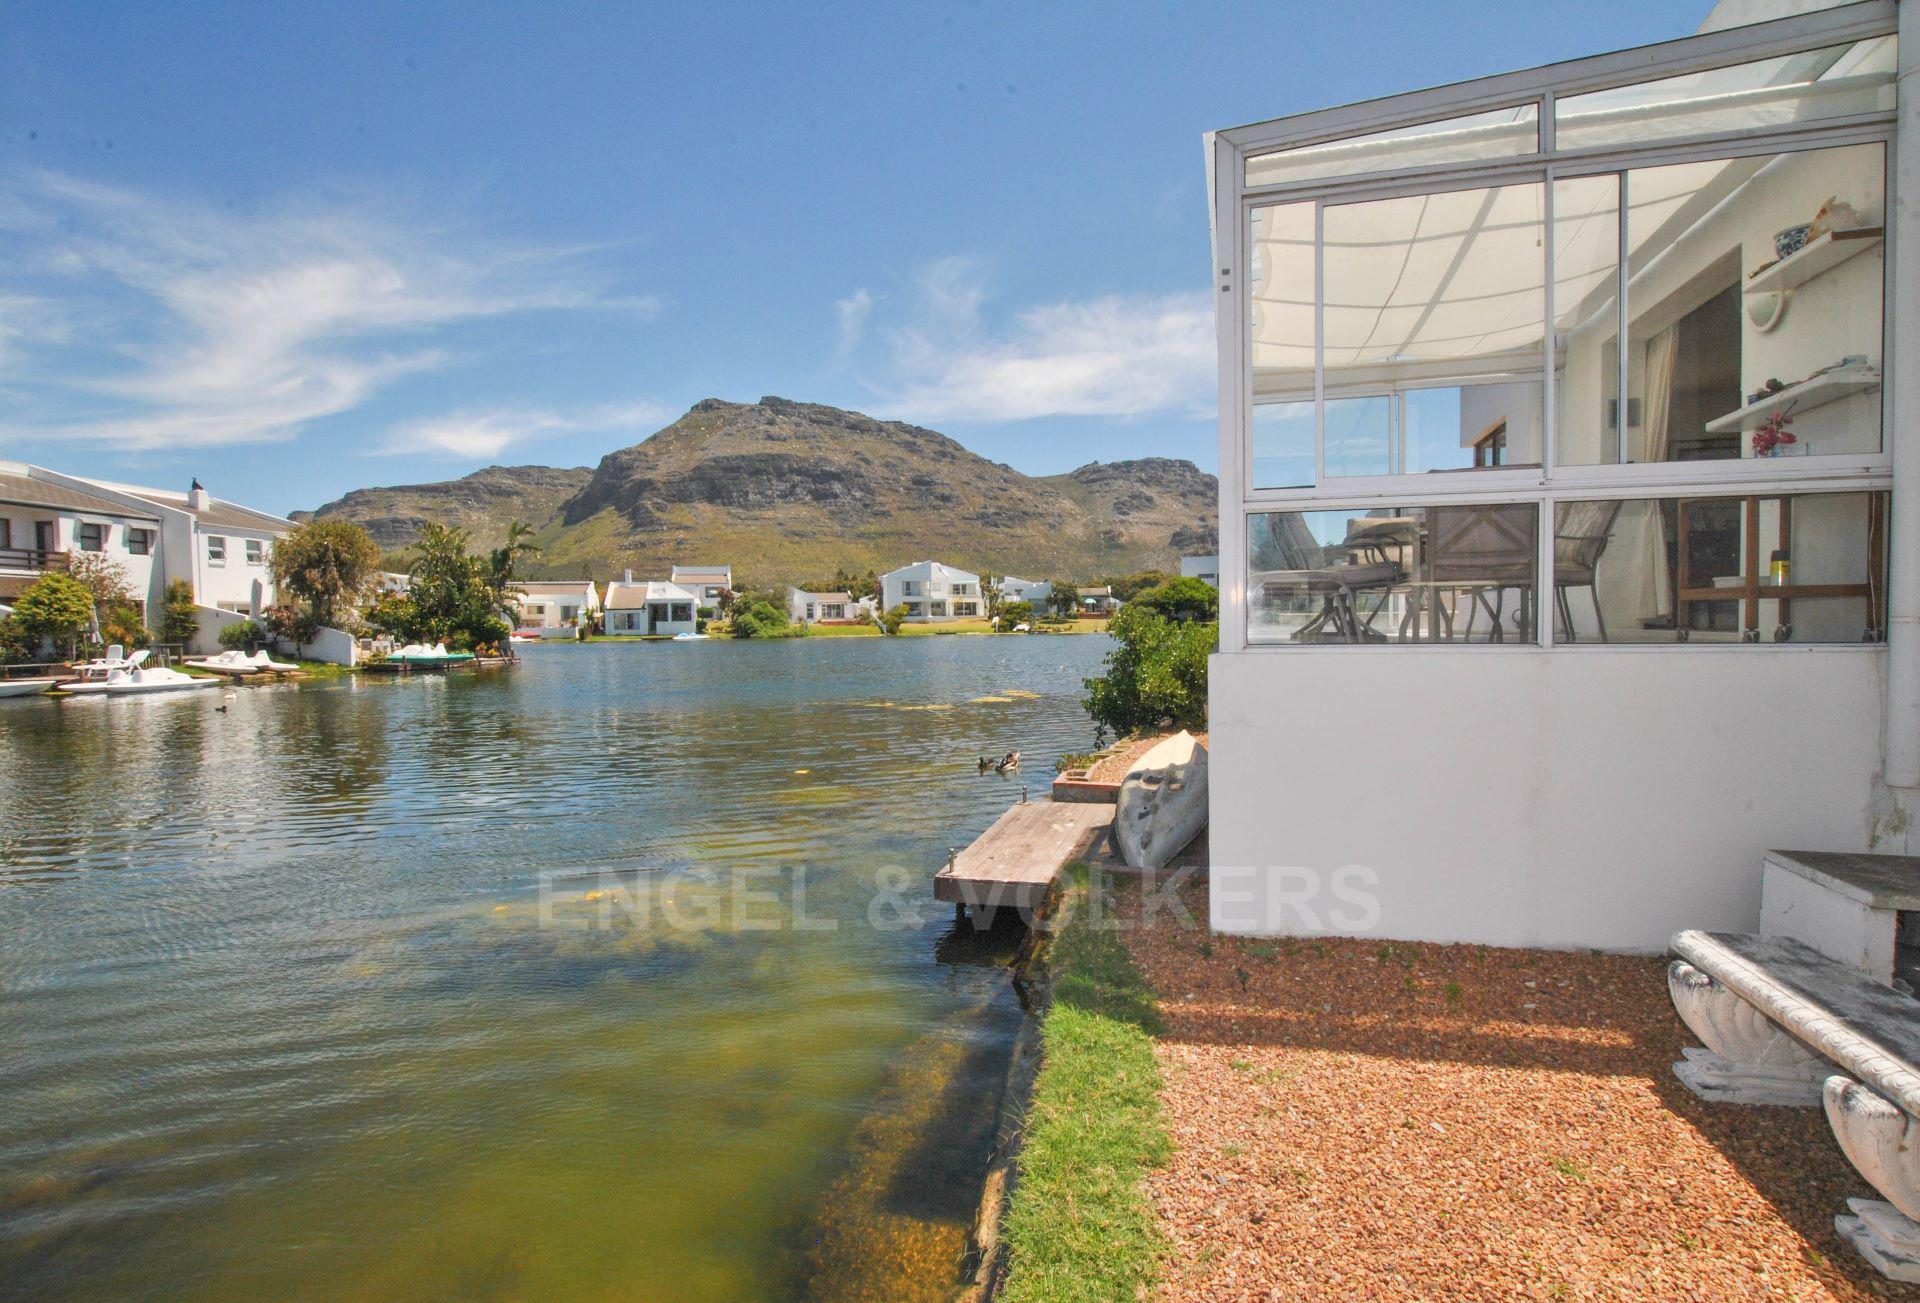 Marina Da Gama property for sale. Ref No: 13563396. Picture no 1